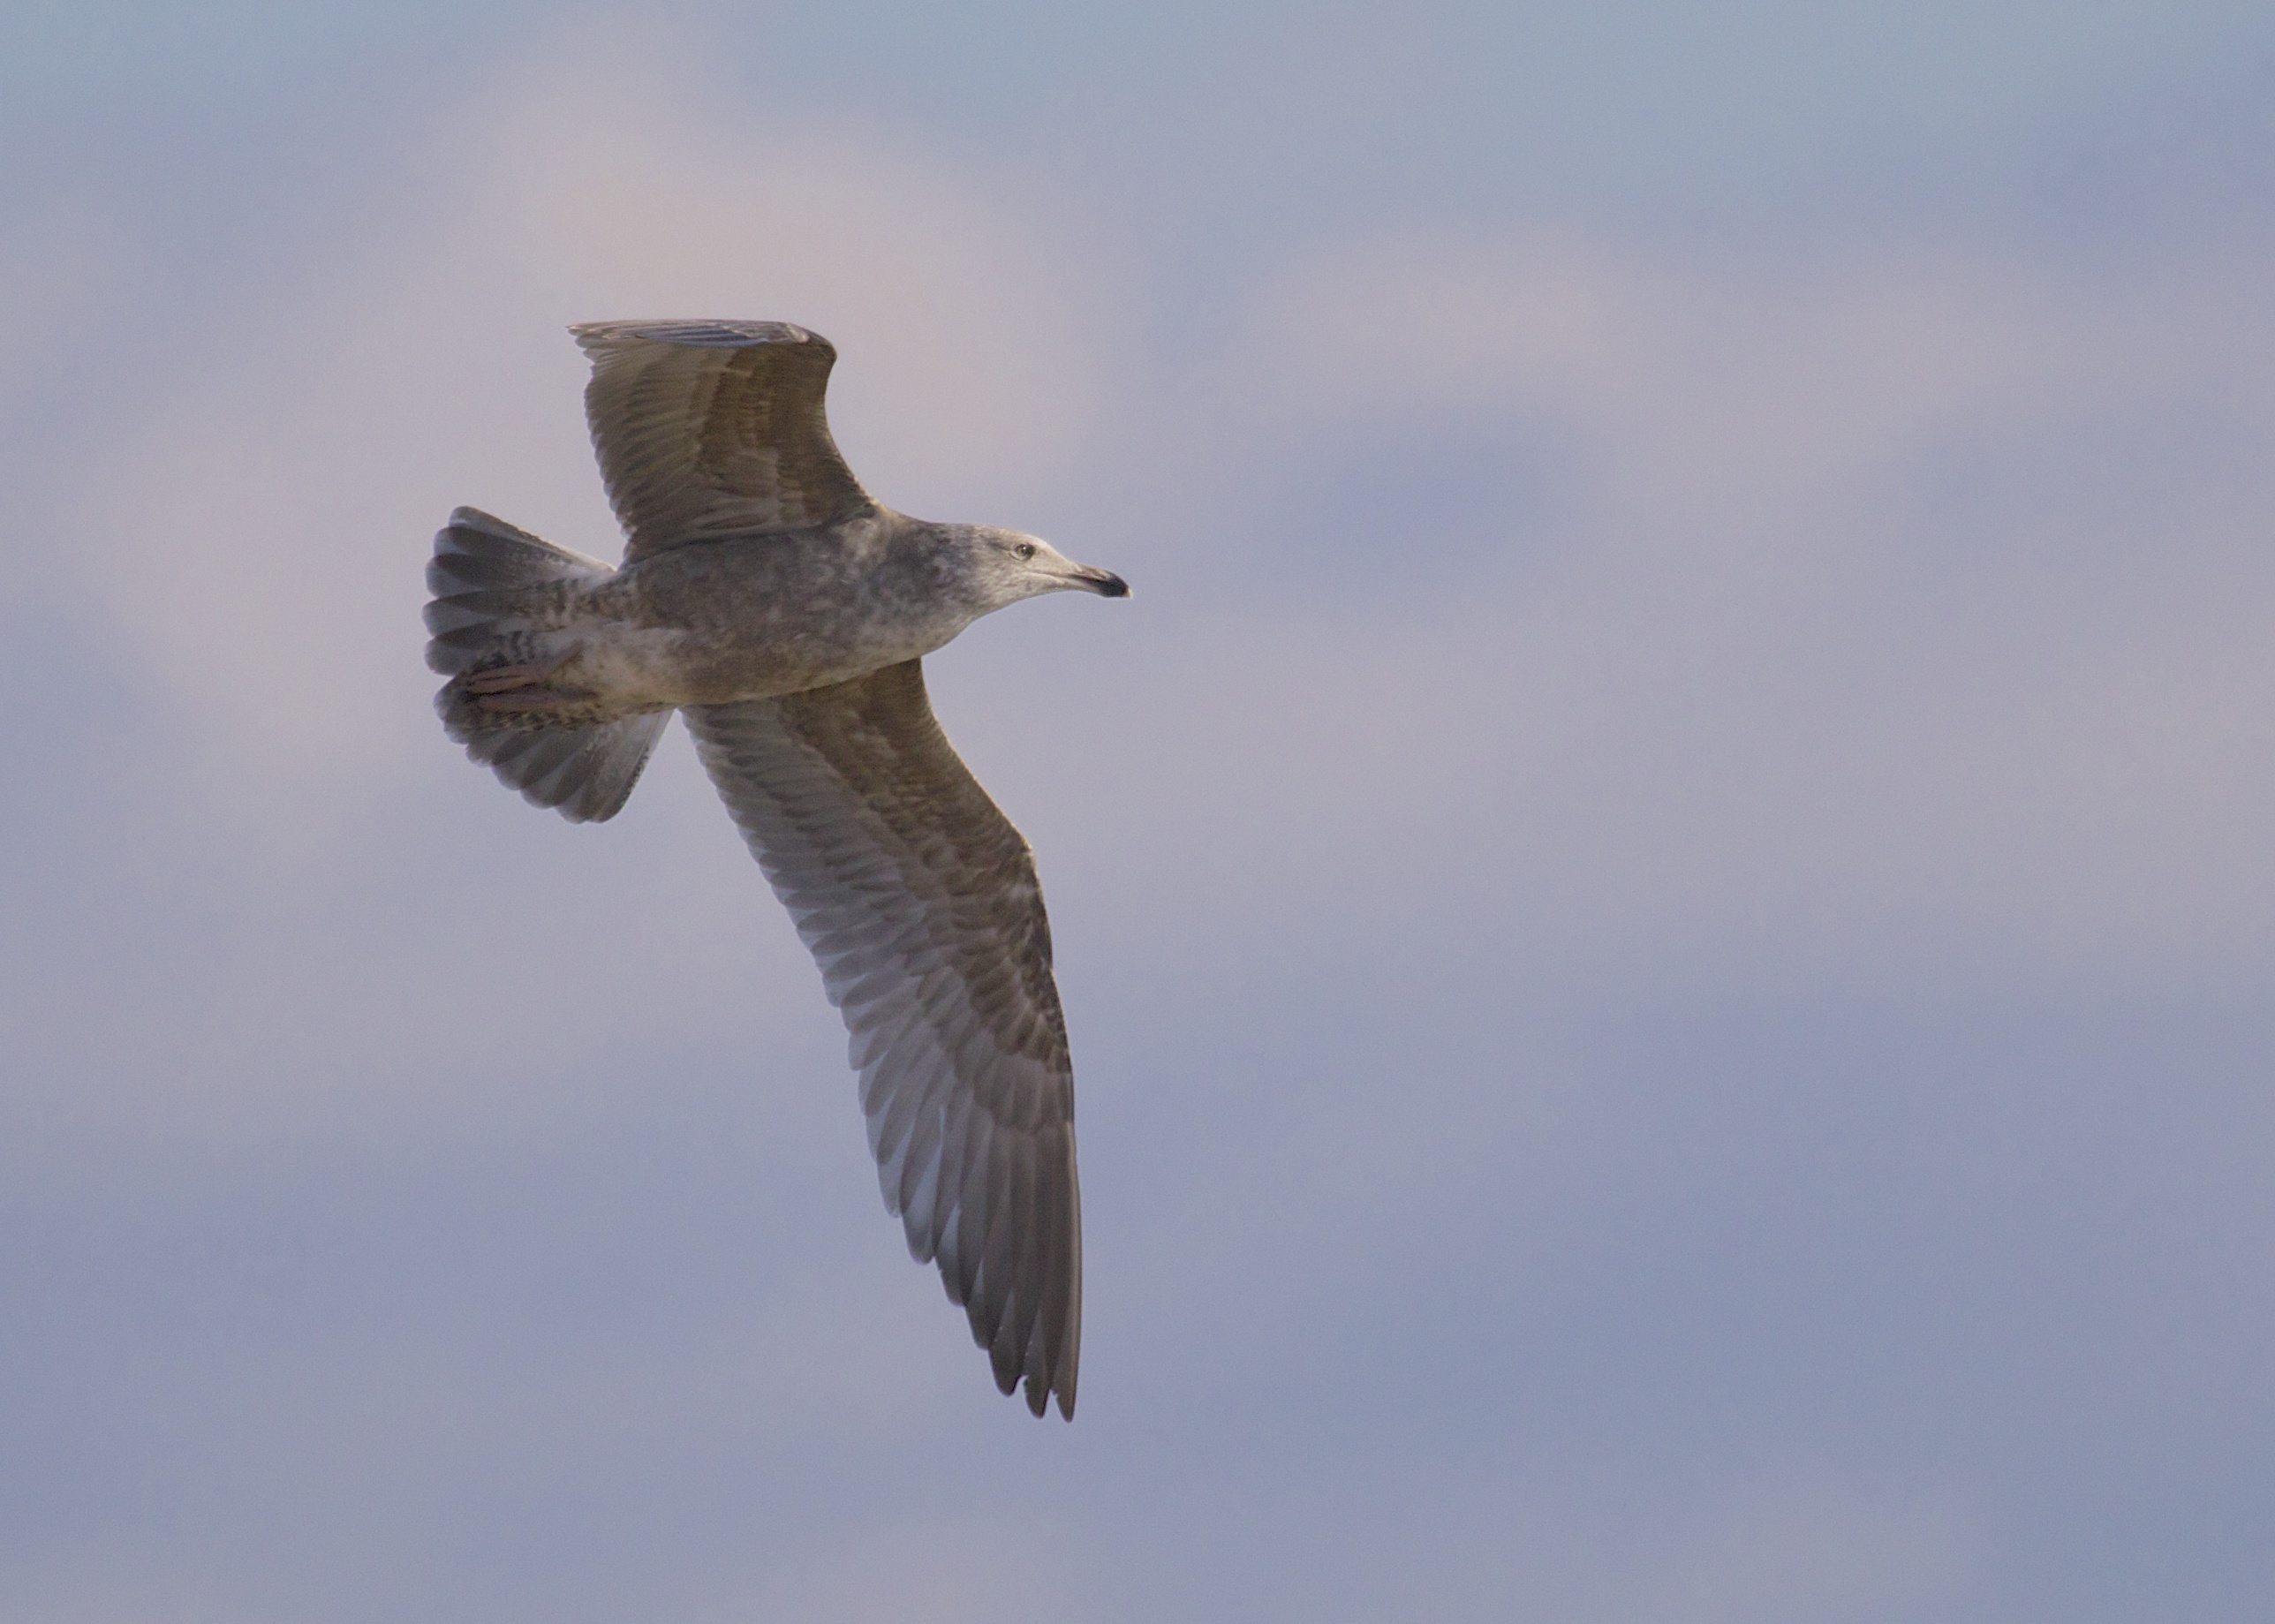 I have this as a first winter Herring Gull. Oak Beach, 12/15/13.